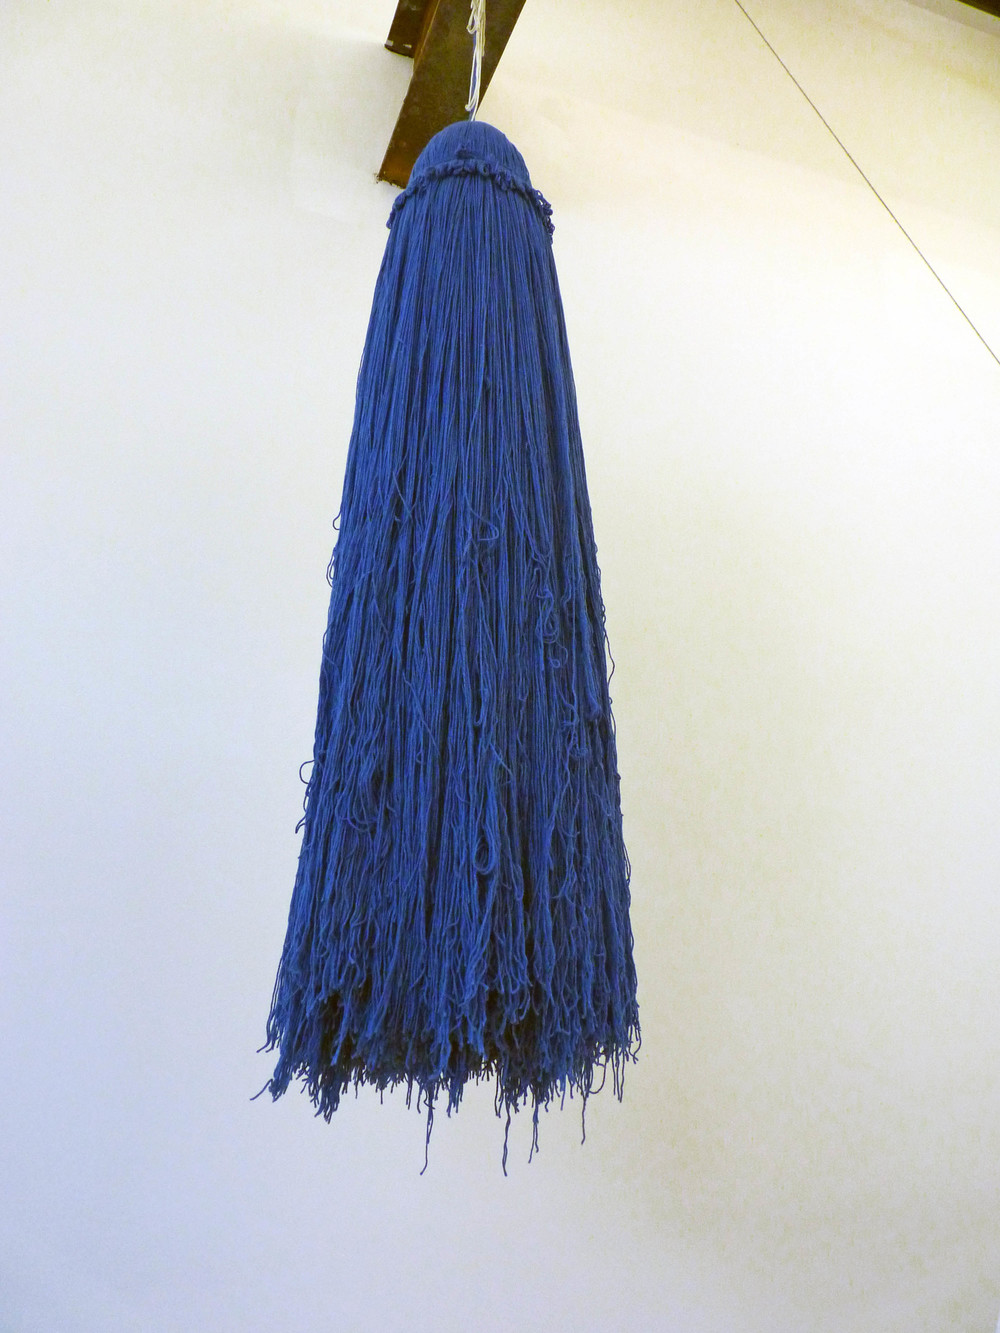 Denim Burka Tassel, 2005-2015, 25 pounds of acrylic yarn, beads and rope with hook, 7' with rope dimensions variable, Detail from Pleasures of the Flesh, 2015